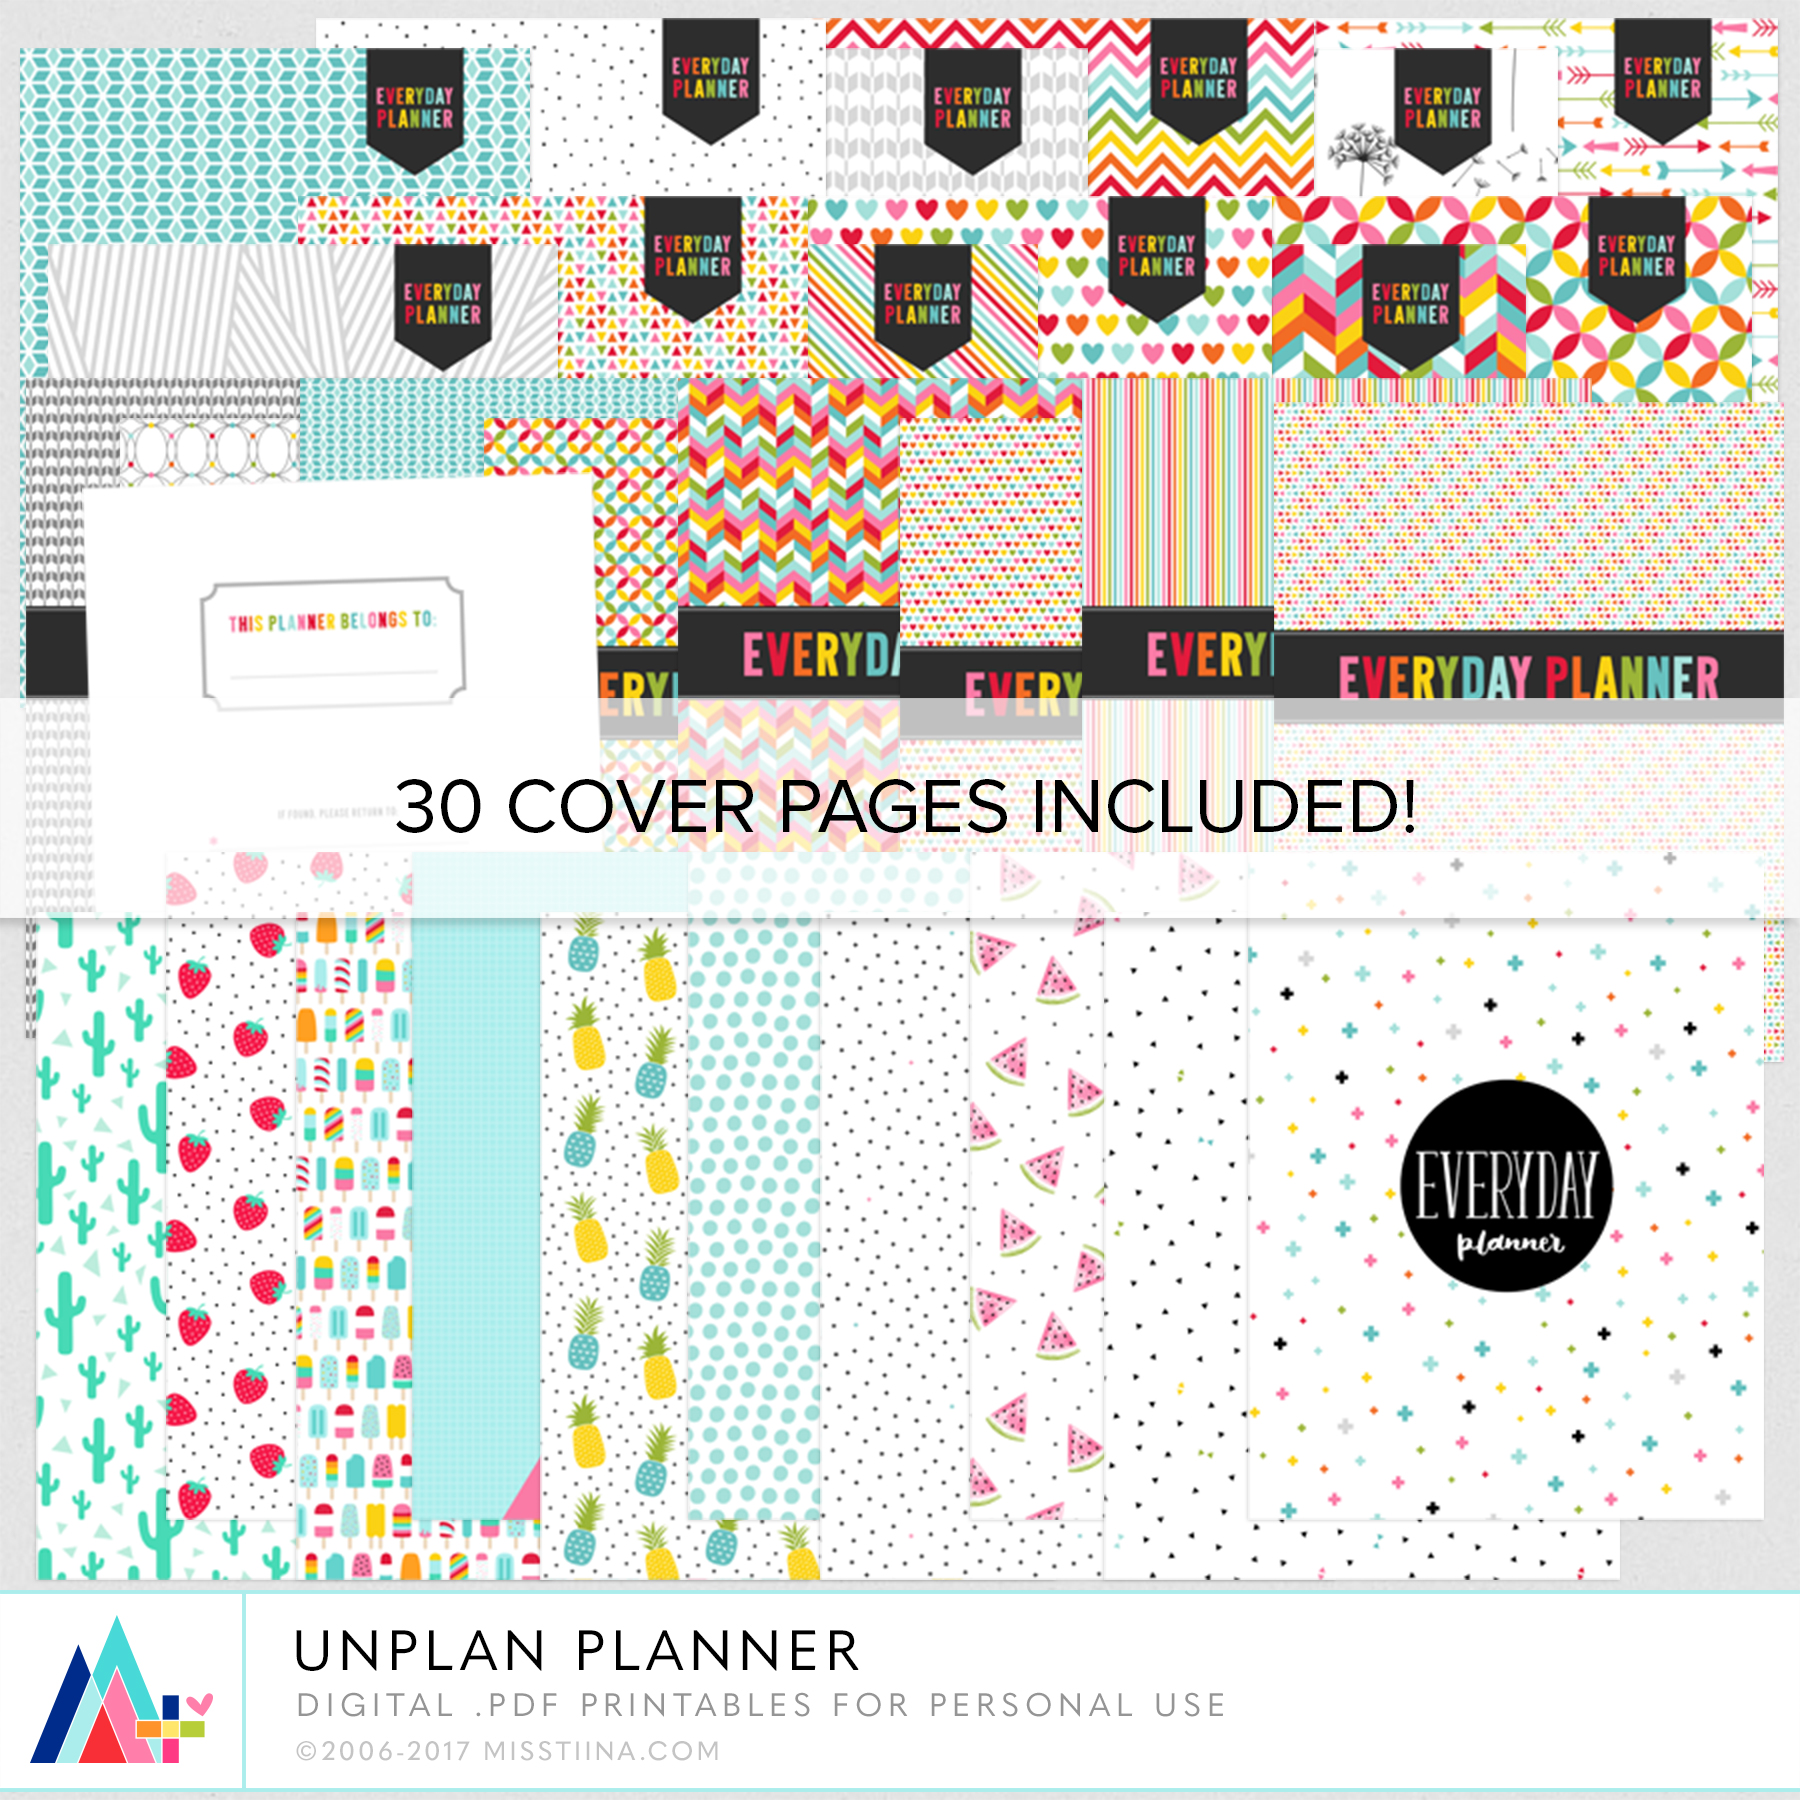 UNplan Planner Pages By Miss Tiina